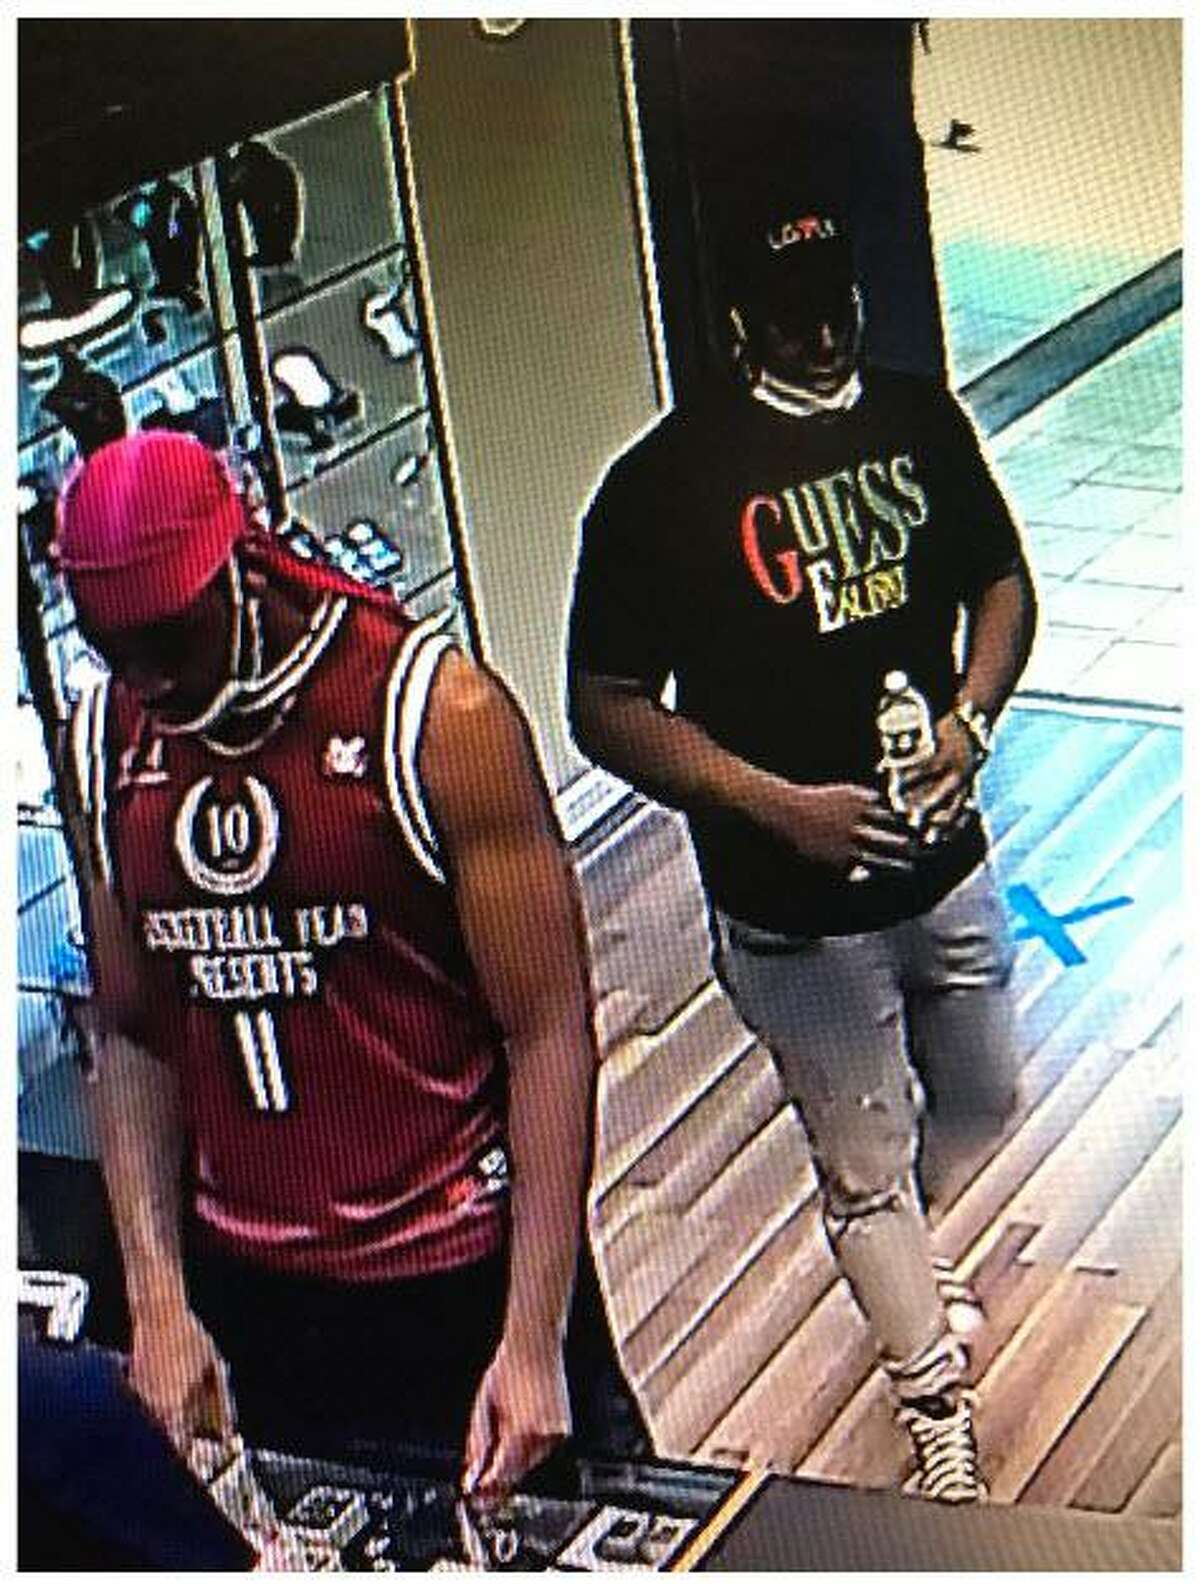 Milford, Conn., police are looking to identify these two pictured individuals who they say were linked to a recent larceny from the Connecticut Post Mall.